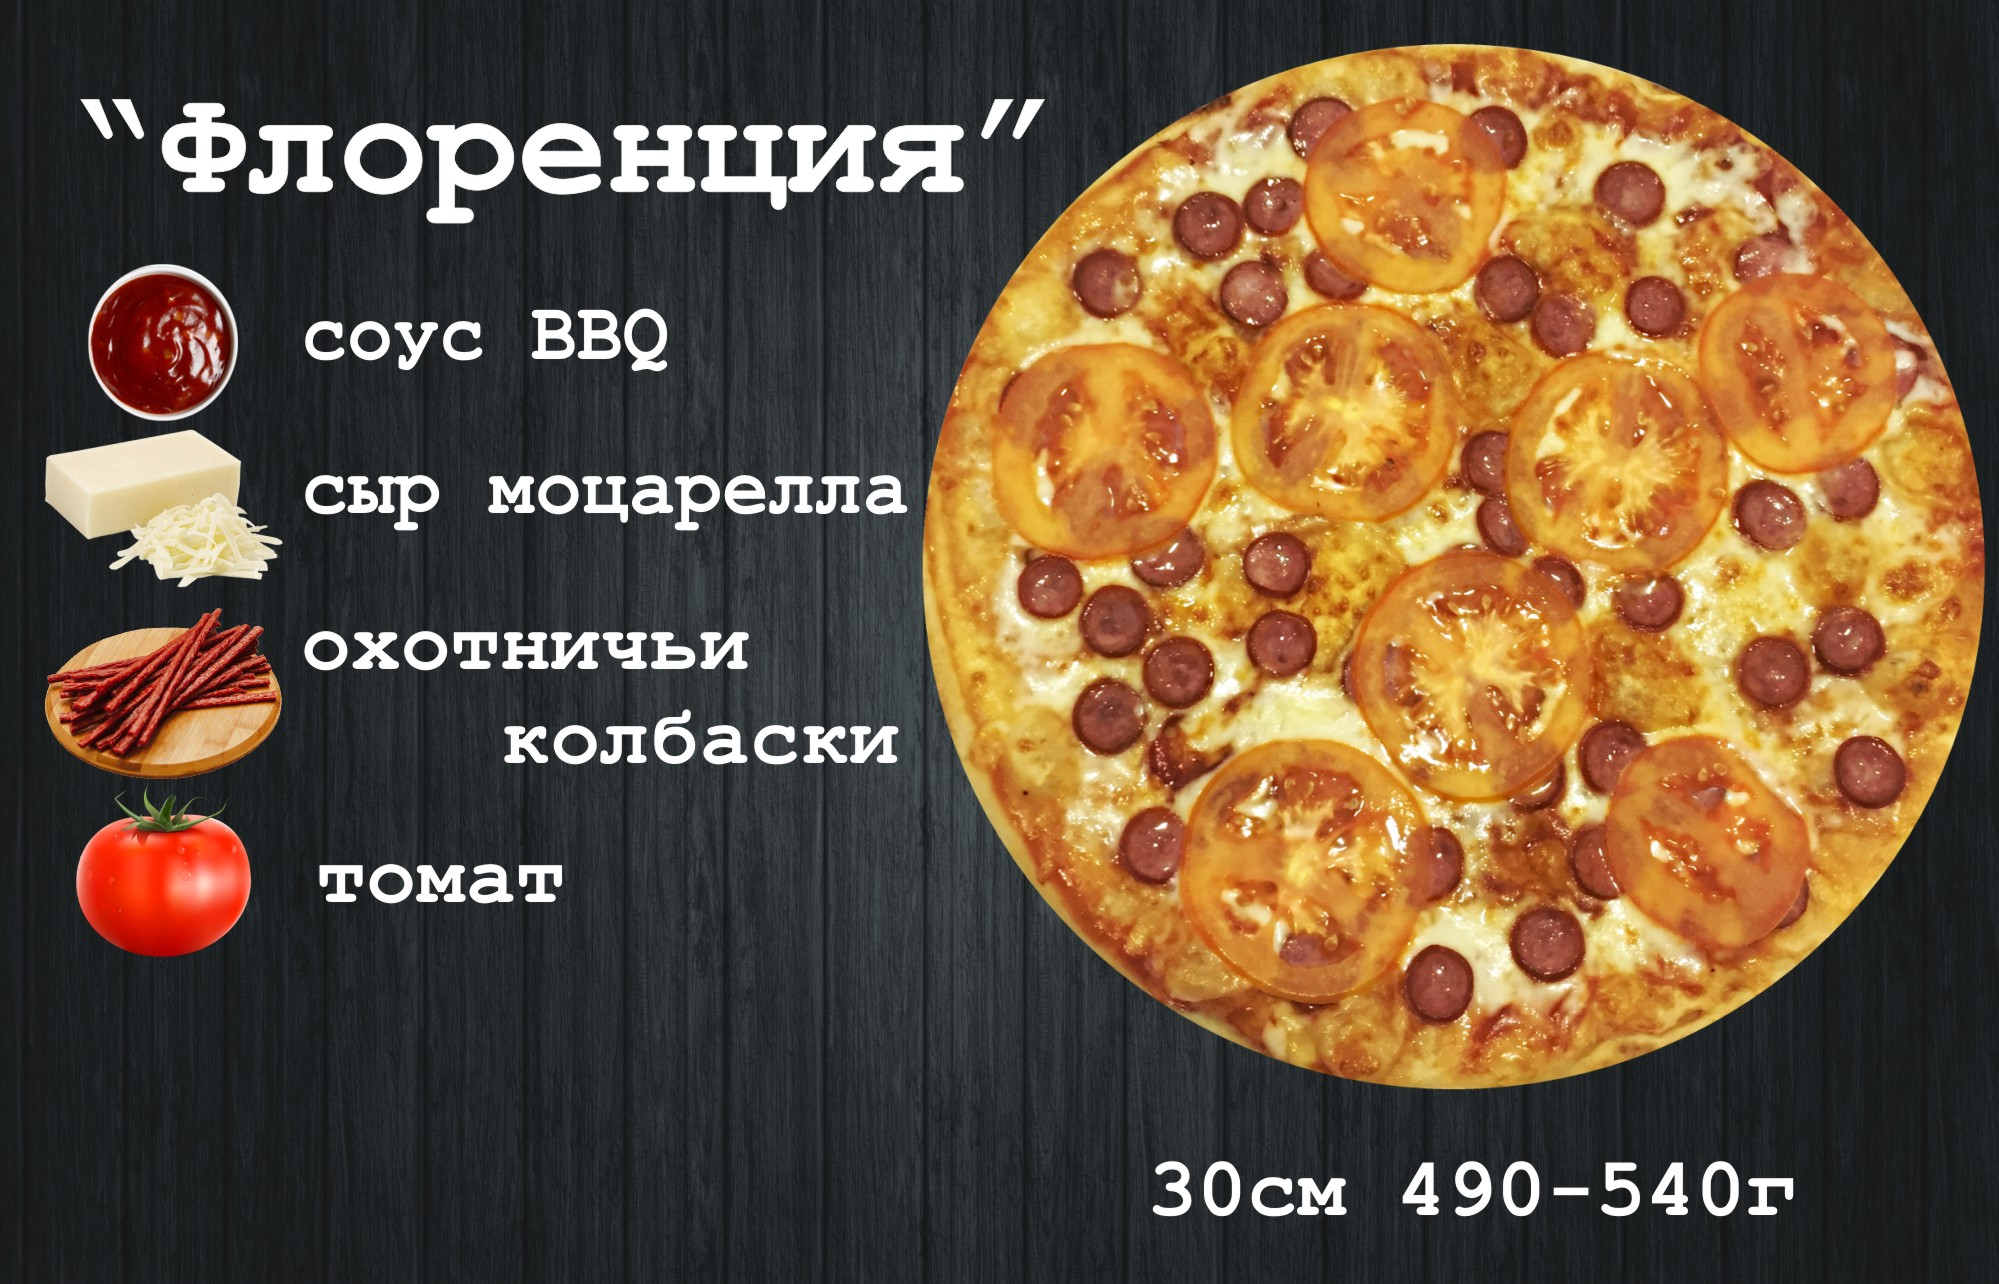 флоренция_pizza_urbanfood_minsk